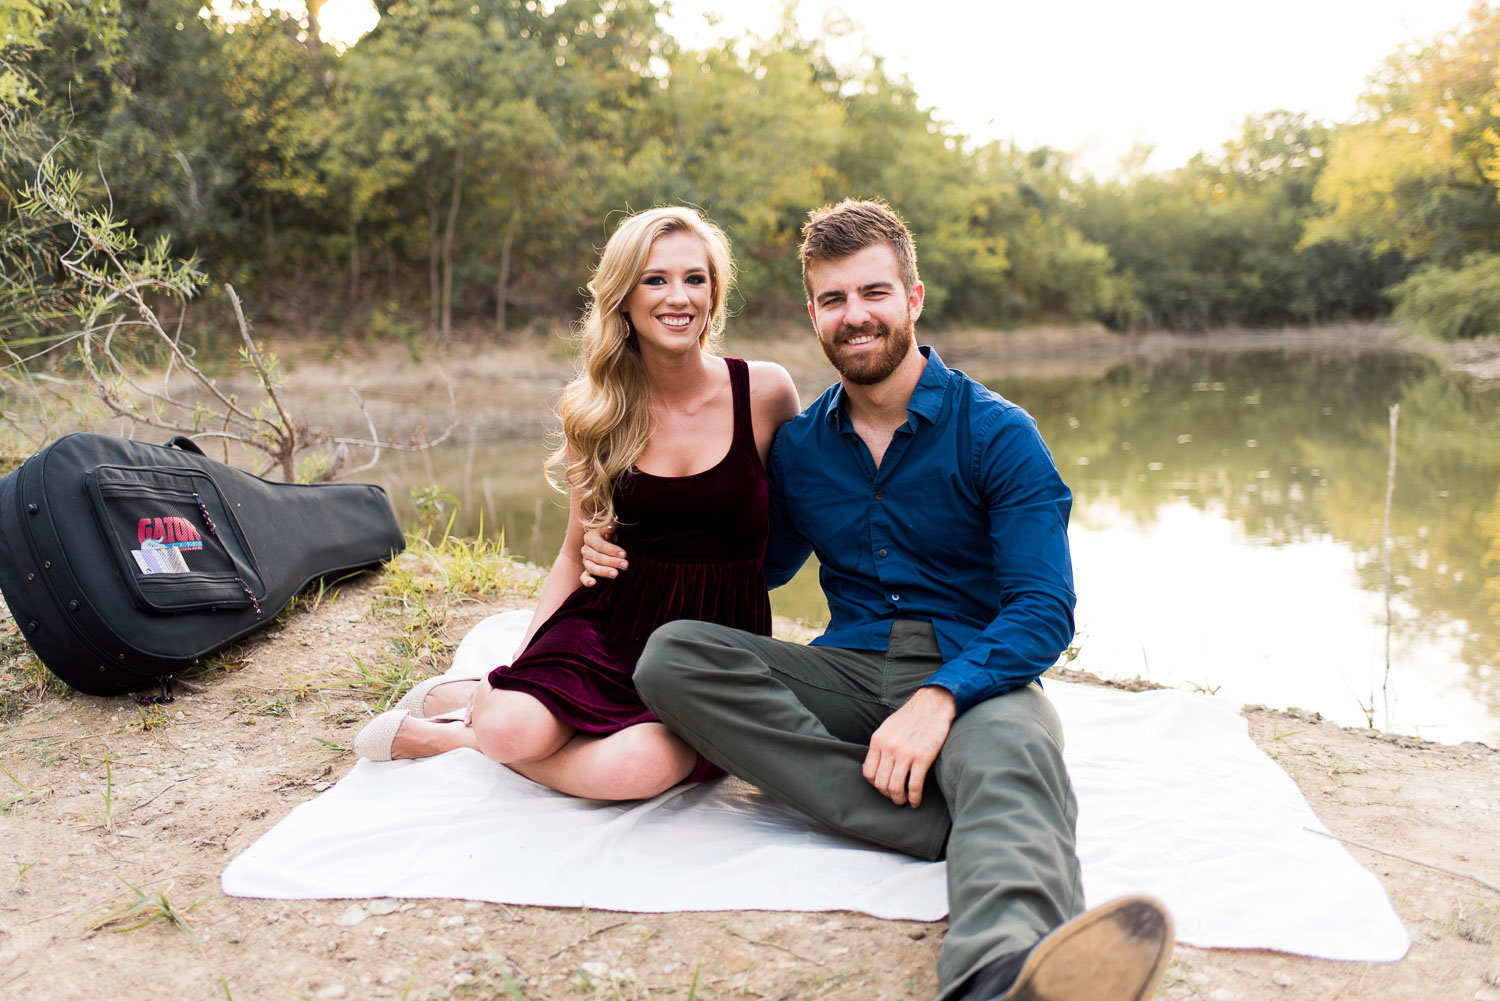 josh - lindsey - engagement - photos - alrington - texas - river - legacy - park-5.jpg